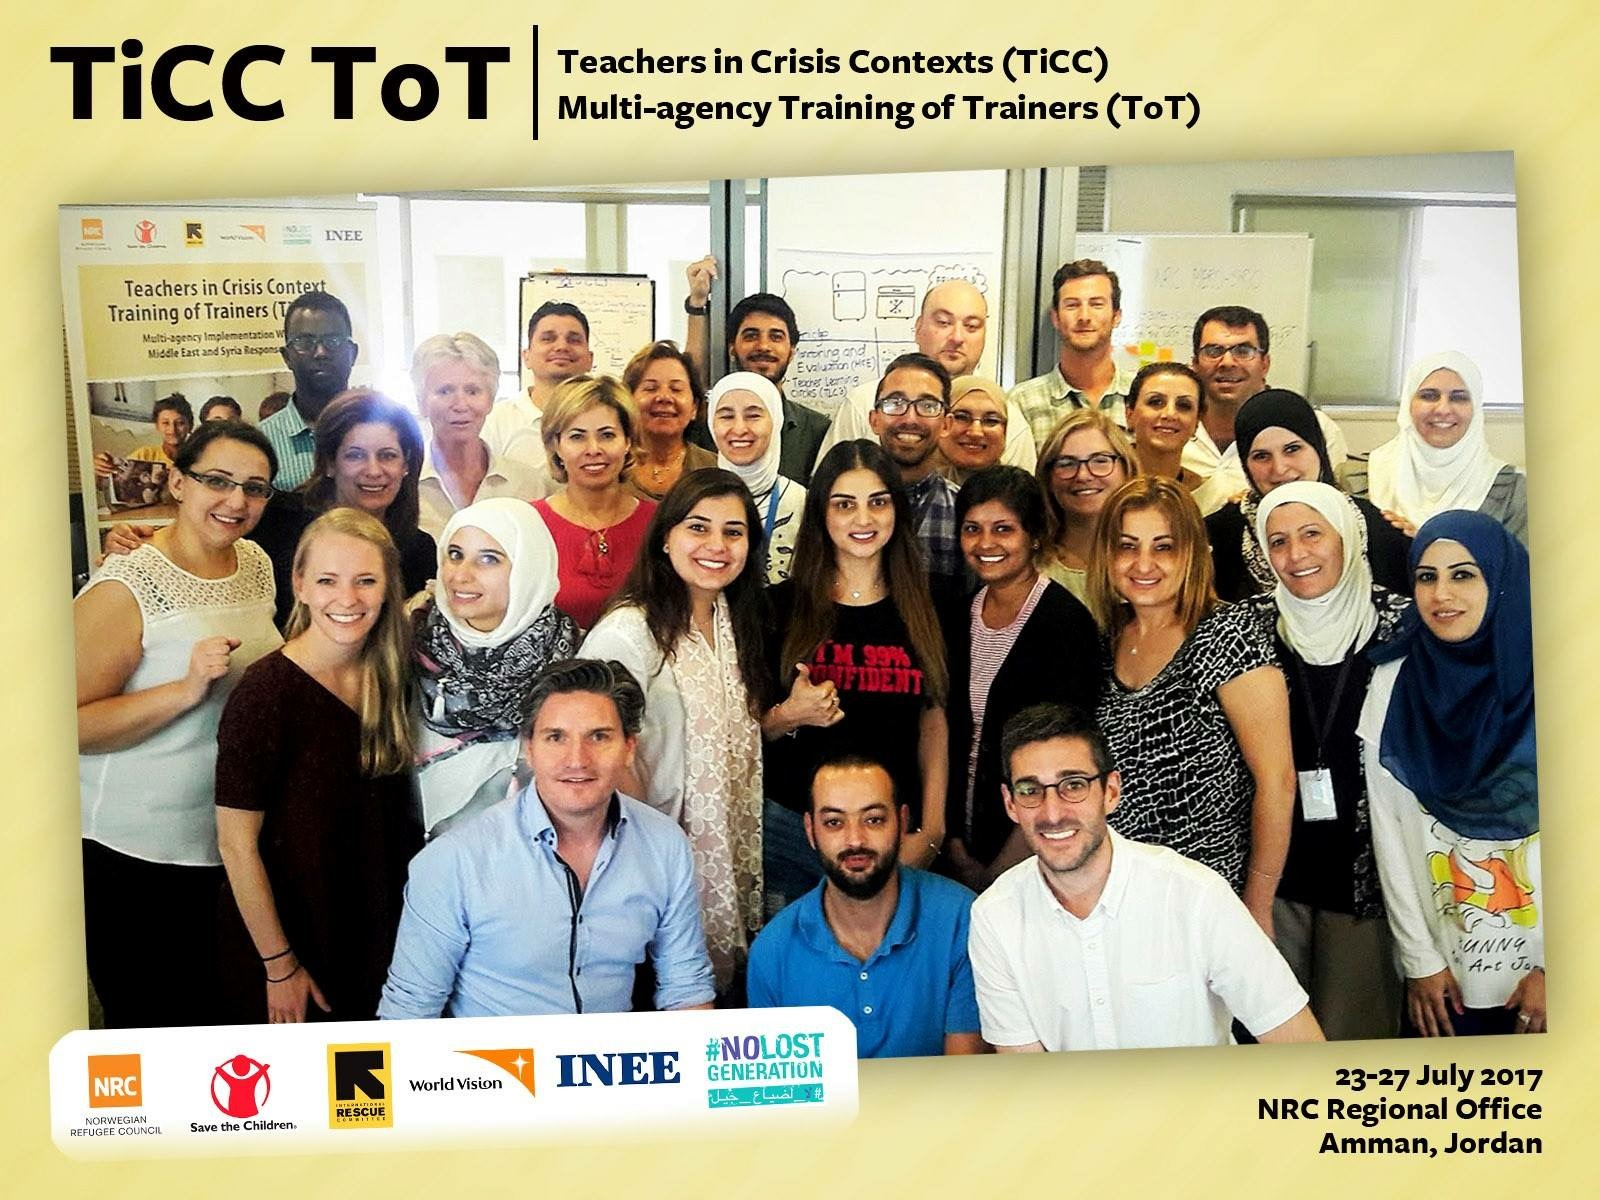 Multi-agency Training of TiCC Trainers in the Middle East